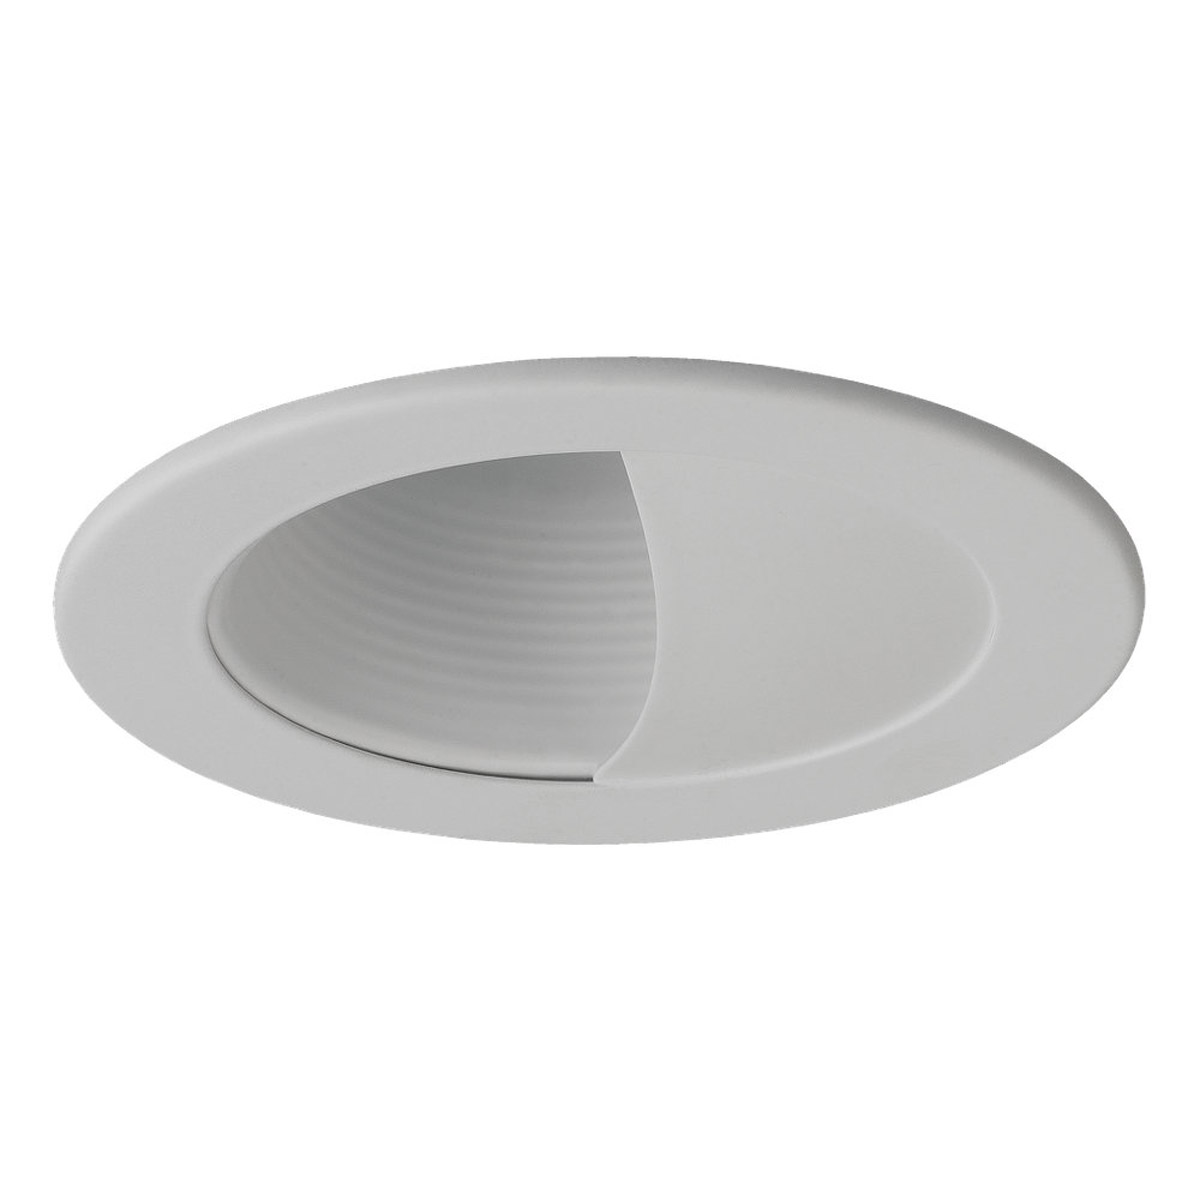 Sea Gull Lighting Signature Recessed Trim Only in White 11091AT-15